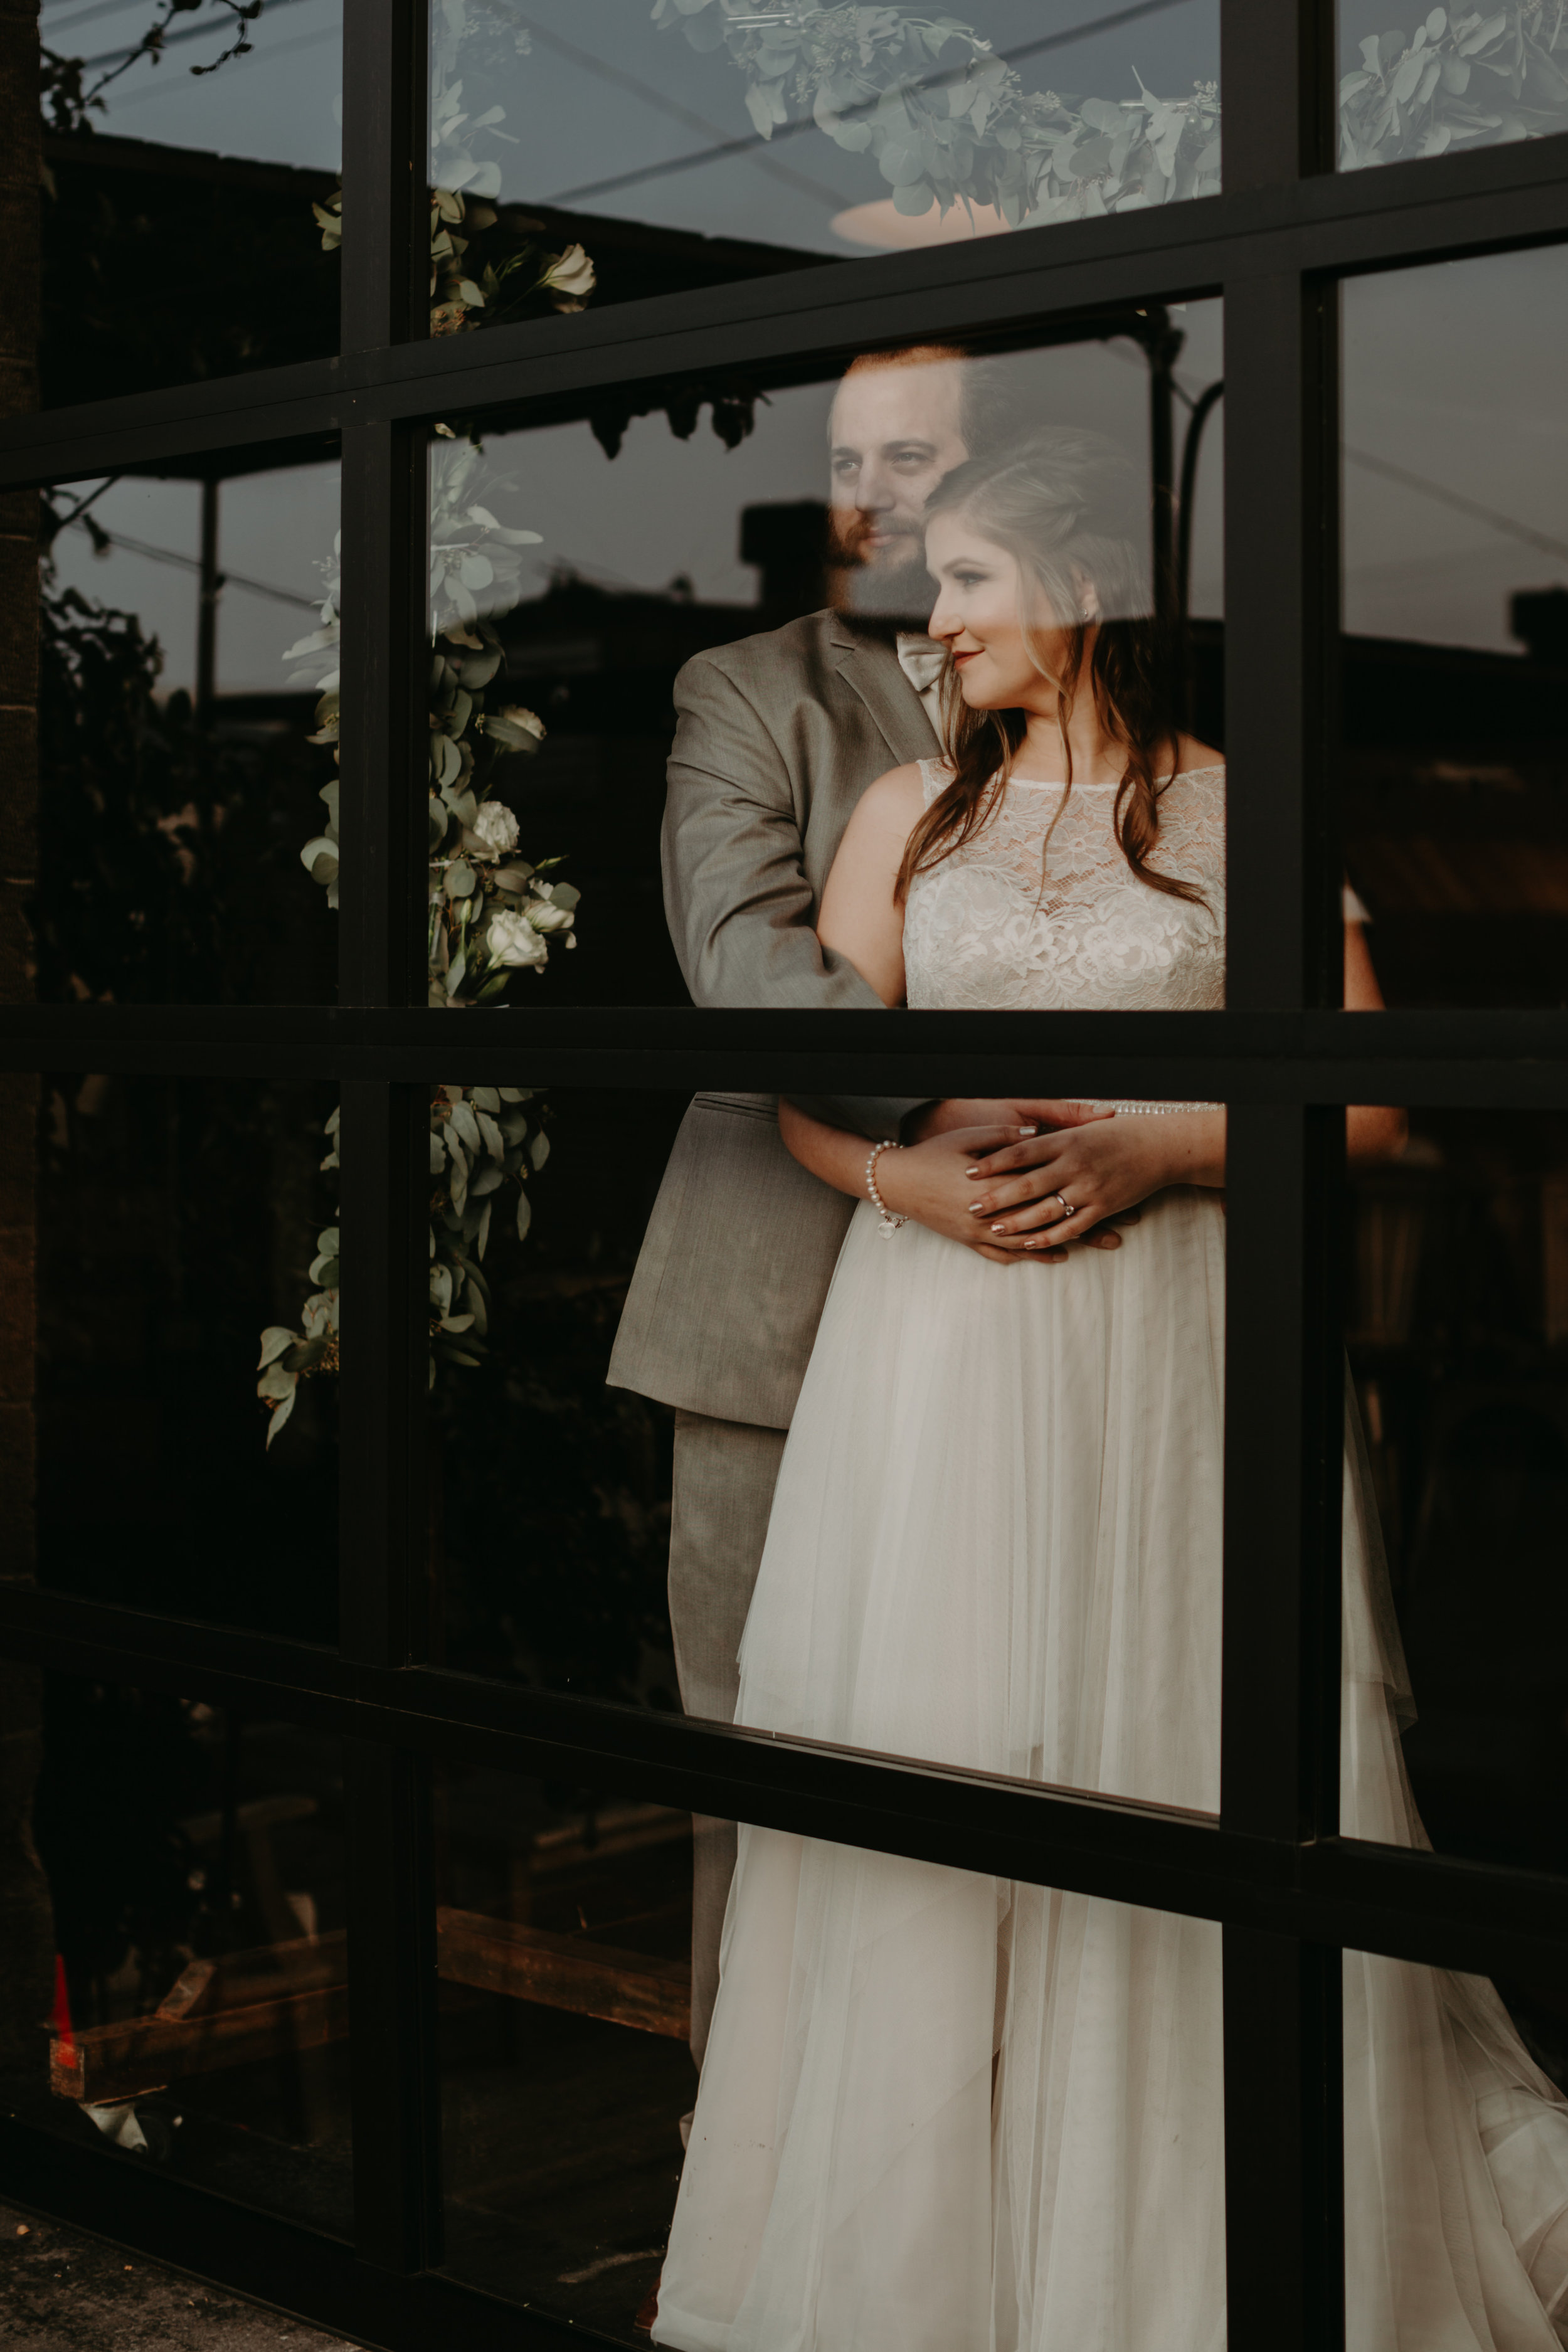 Smoky Hollow Studios Wedding Anne & Lewis Emily Magers Photography-478.jpg